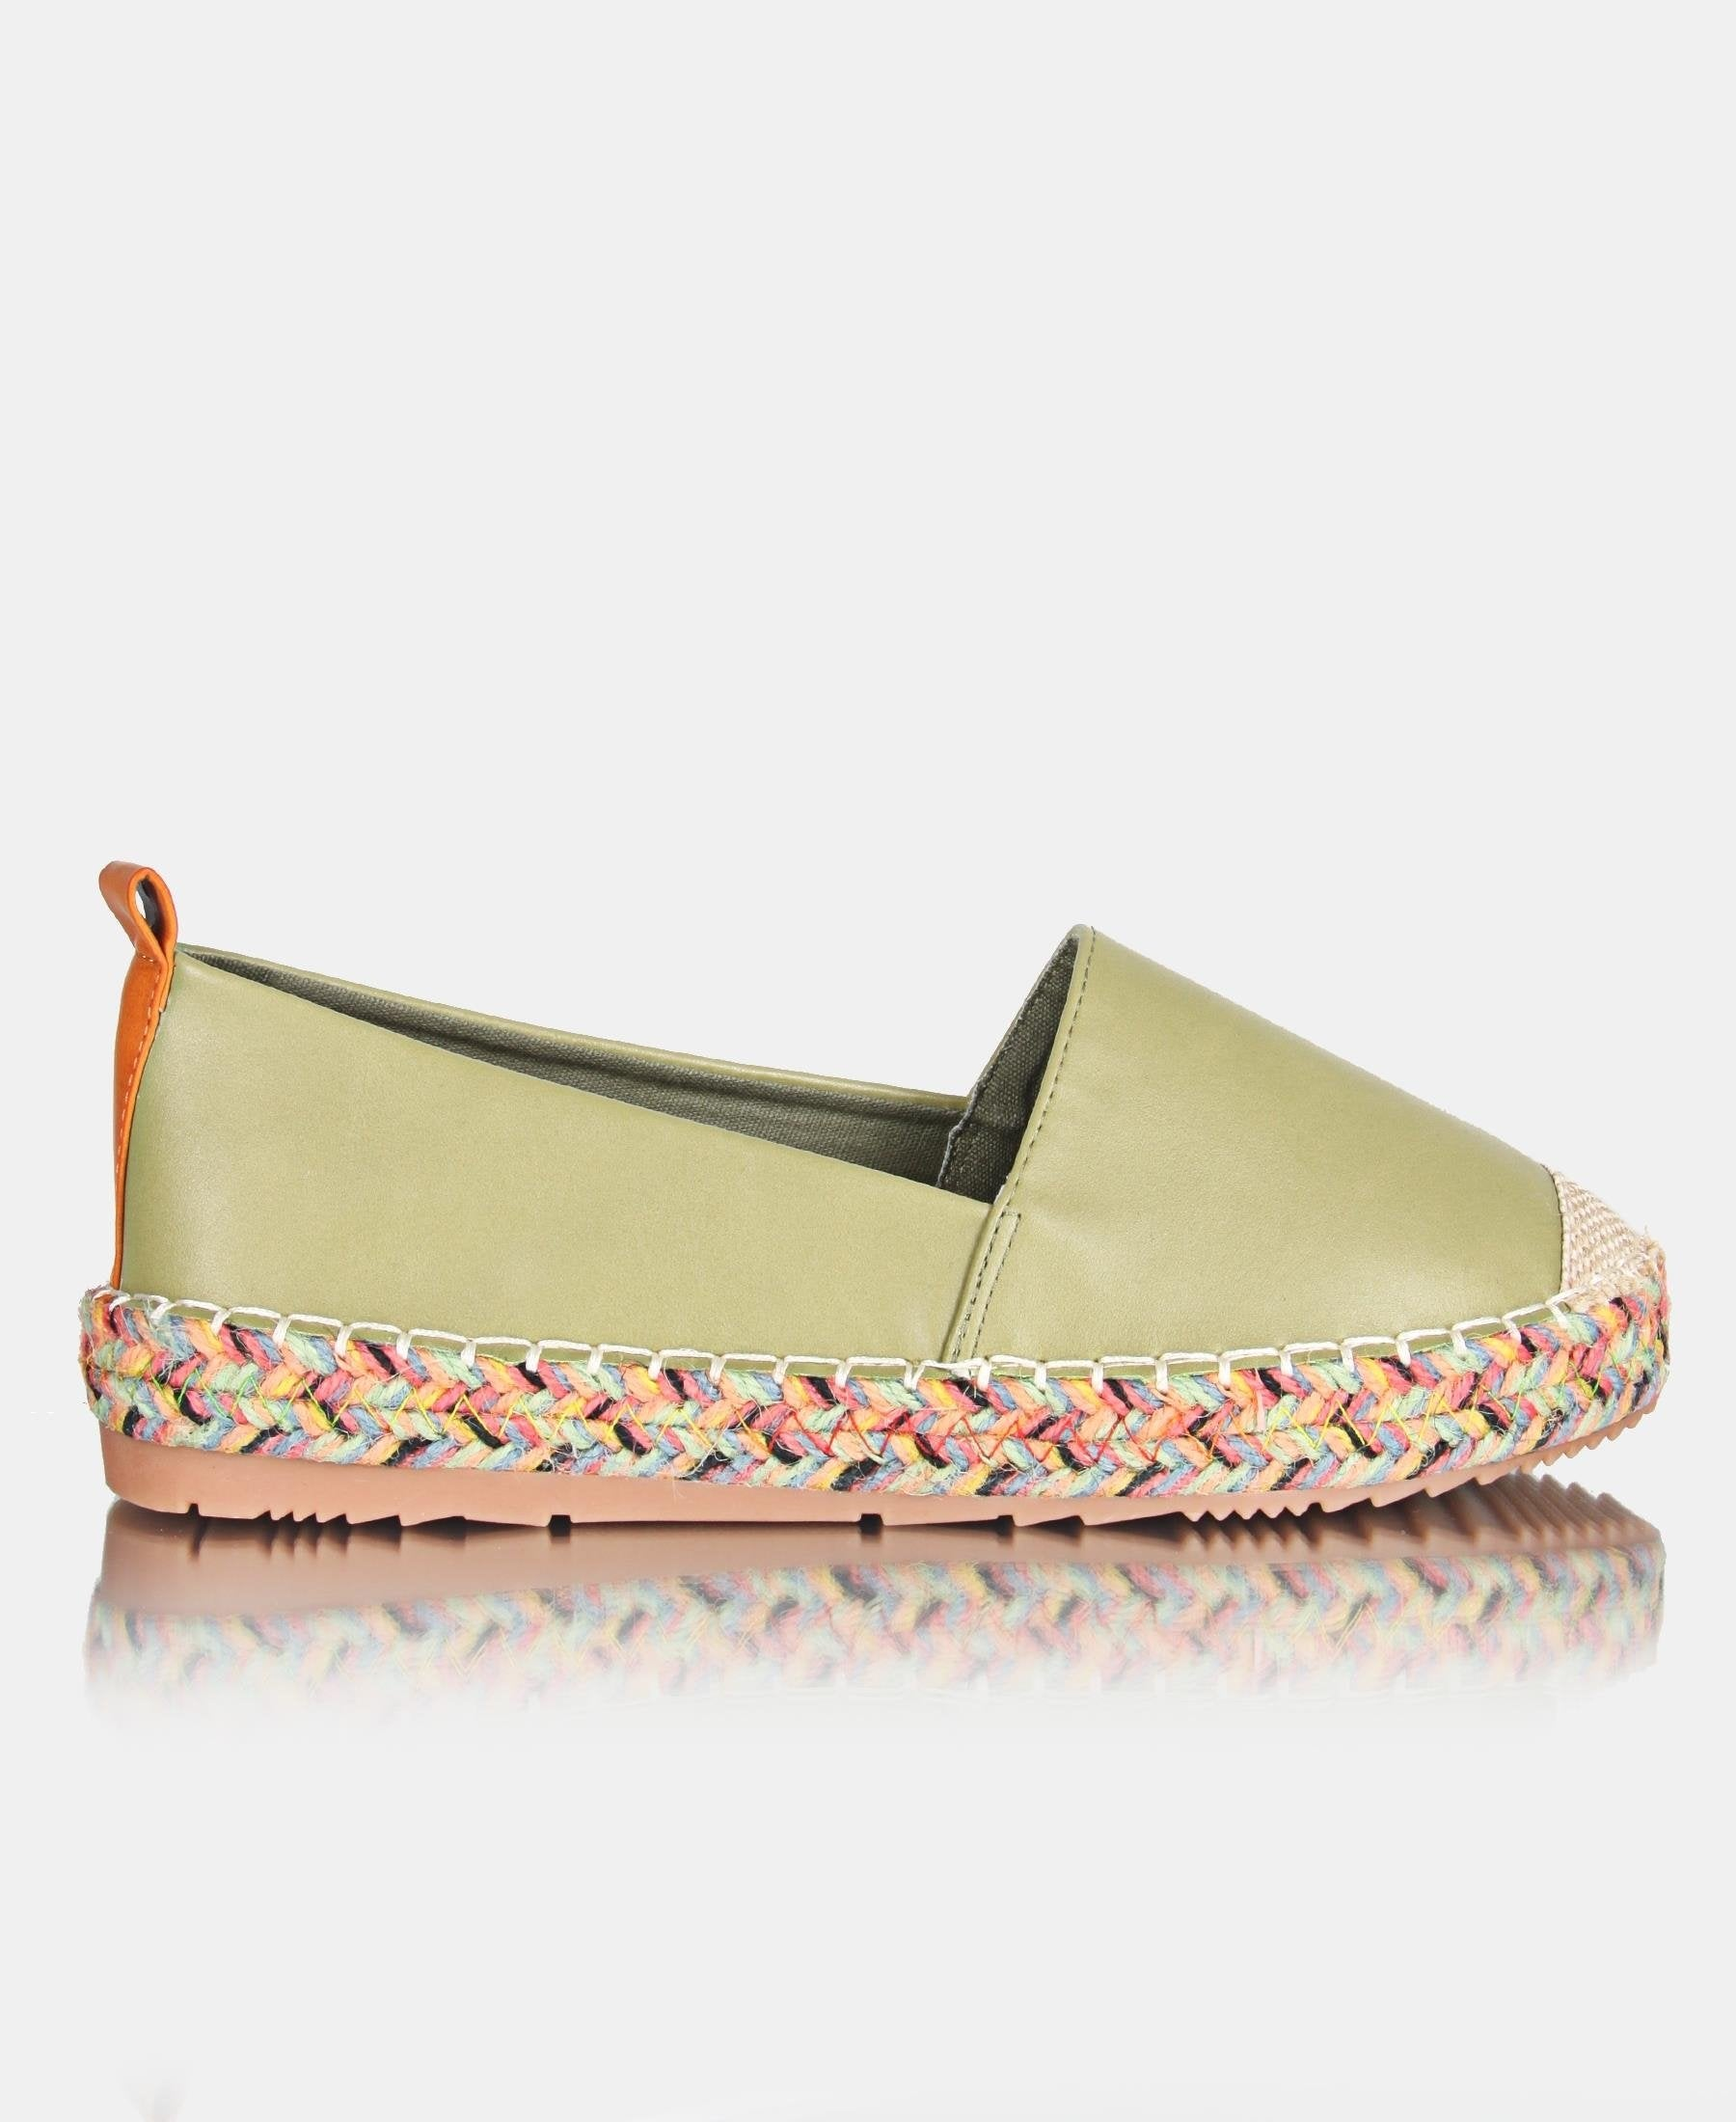 Espadrilles - Green - planet54.com